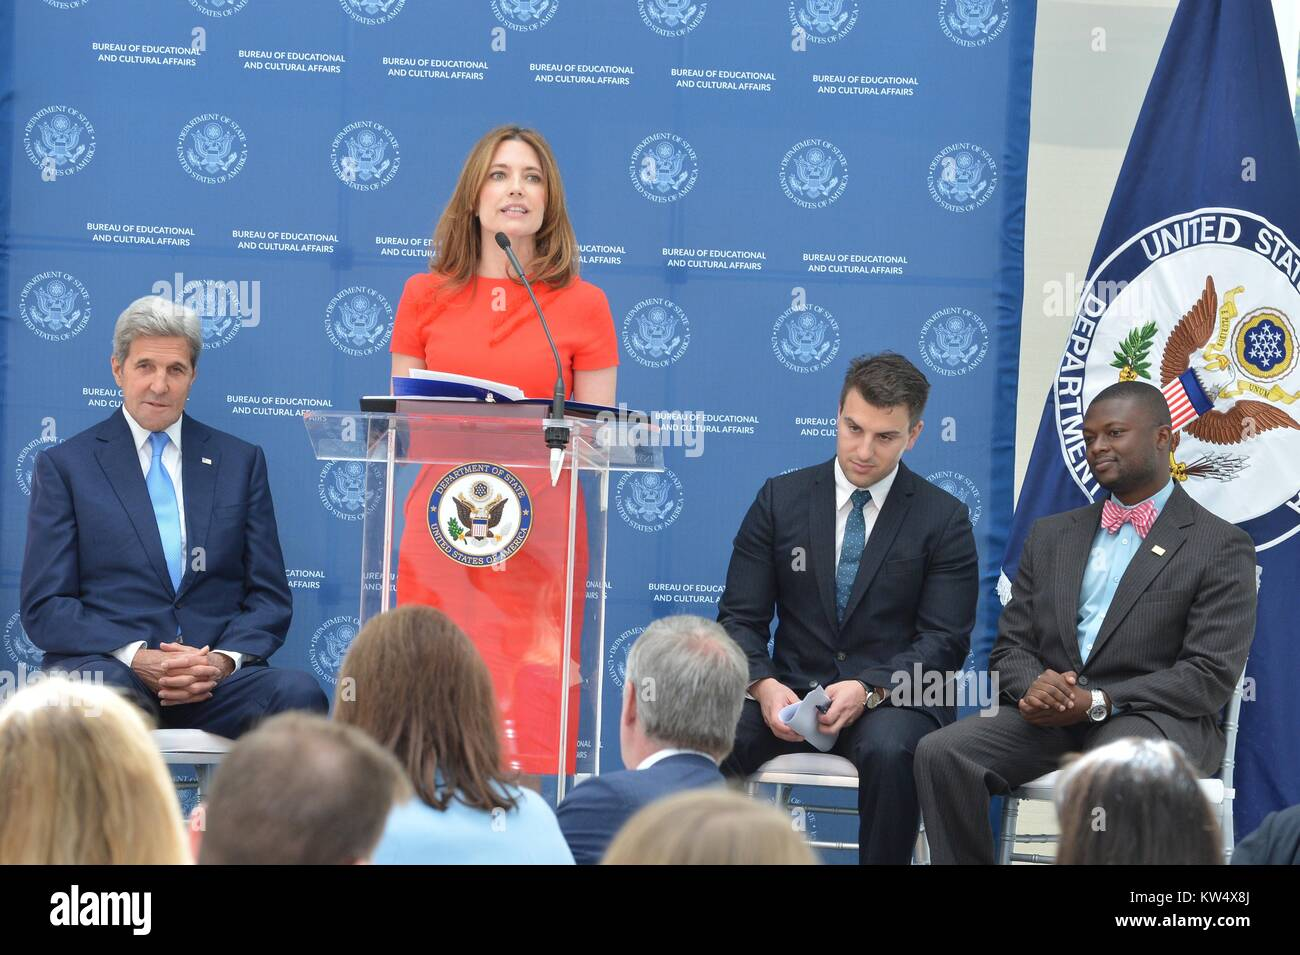 Assistant Secretary of State for the Bureau of Educational and Cultural Affairs Evan Ryan (at podium) speaks alongside U.S. Secretary of State John Kerry (far left) at the Airbnb luncheon for the U.S. Department of State's Gilman Scholarship Program, September 12, 2016. Image courtesy US Department of State. Stock Photo